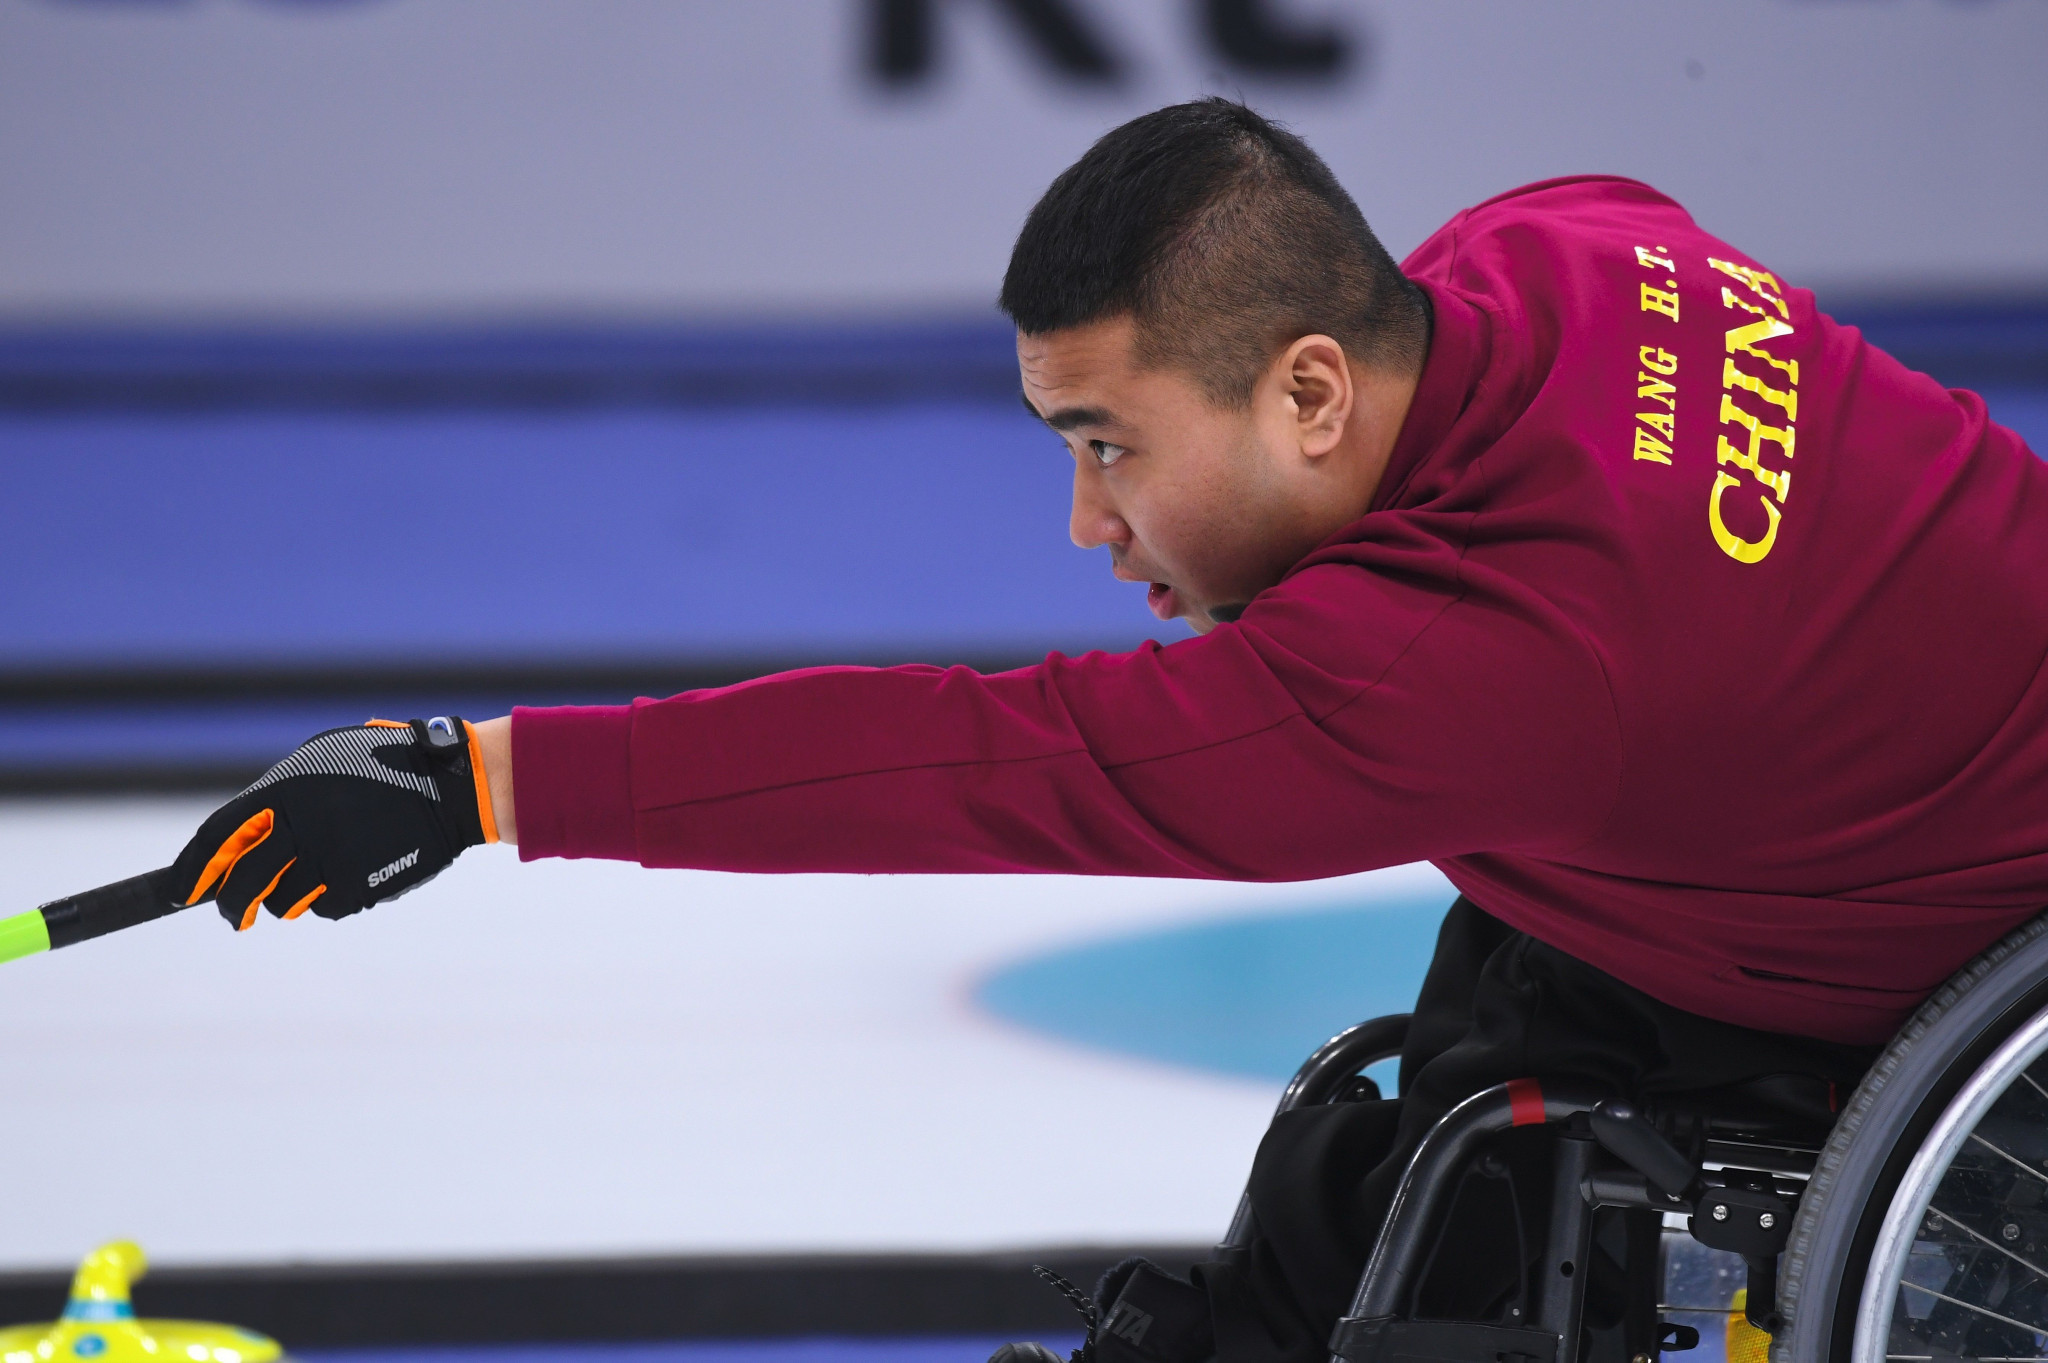 Wheelchair curling has been a Paralympic sport since 2006 ©Getty Images